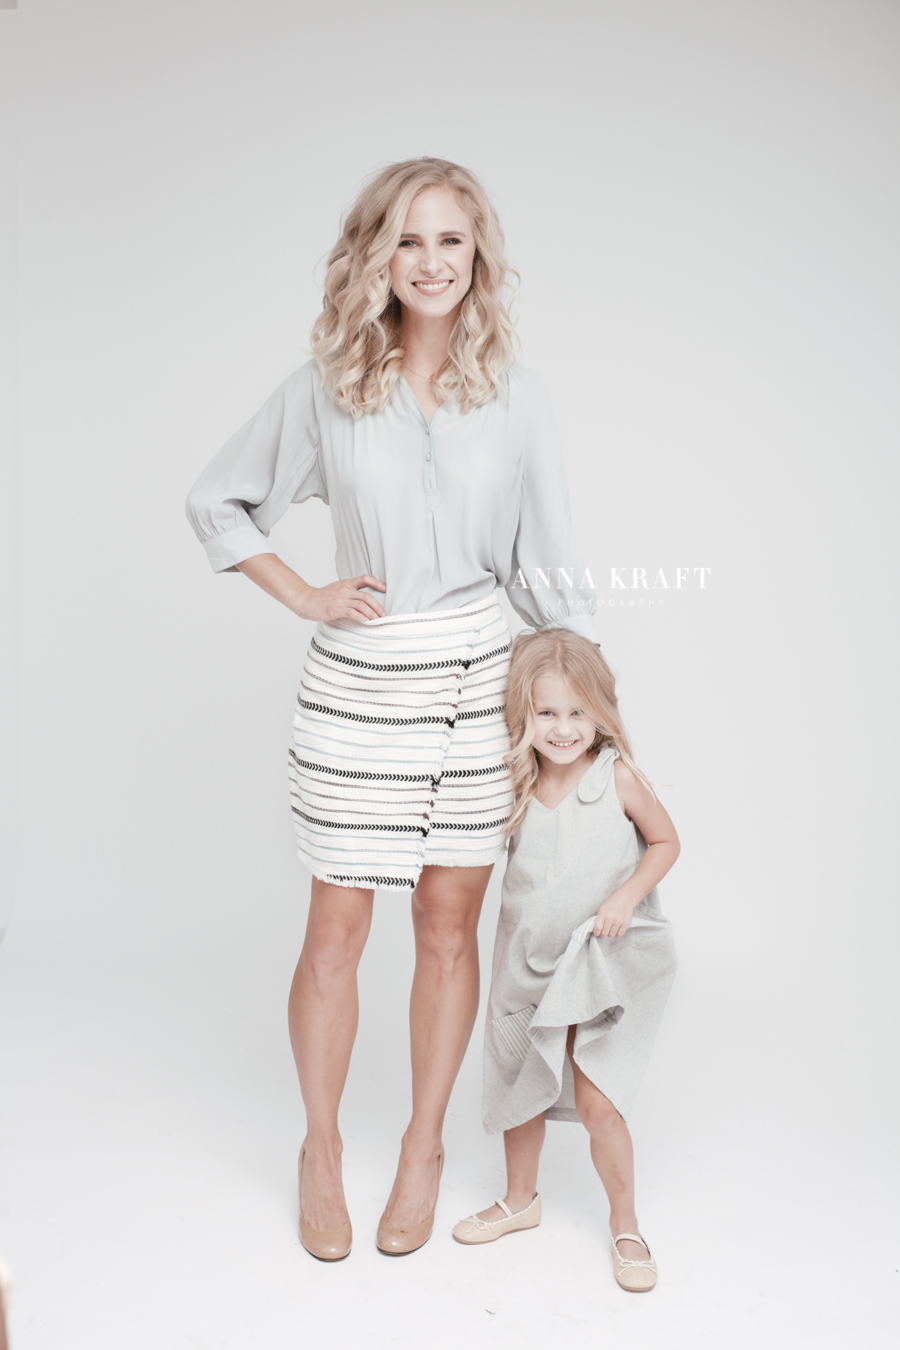 anna_kraft_photography_georgetown_square_studio_family_portrait_Christmas_walters_pictures-4.jpg